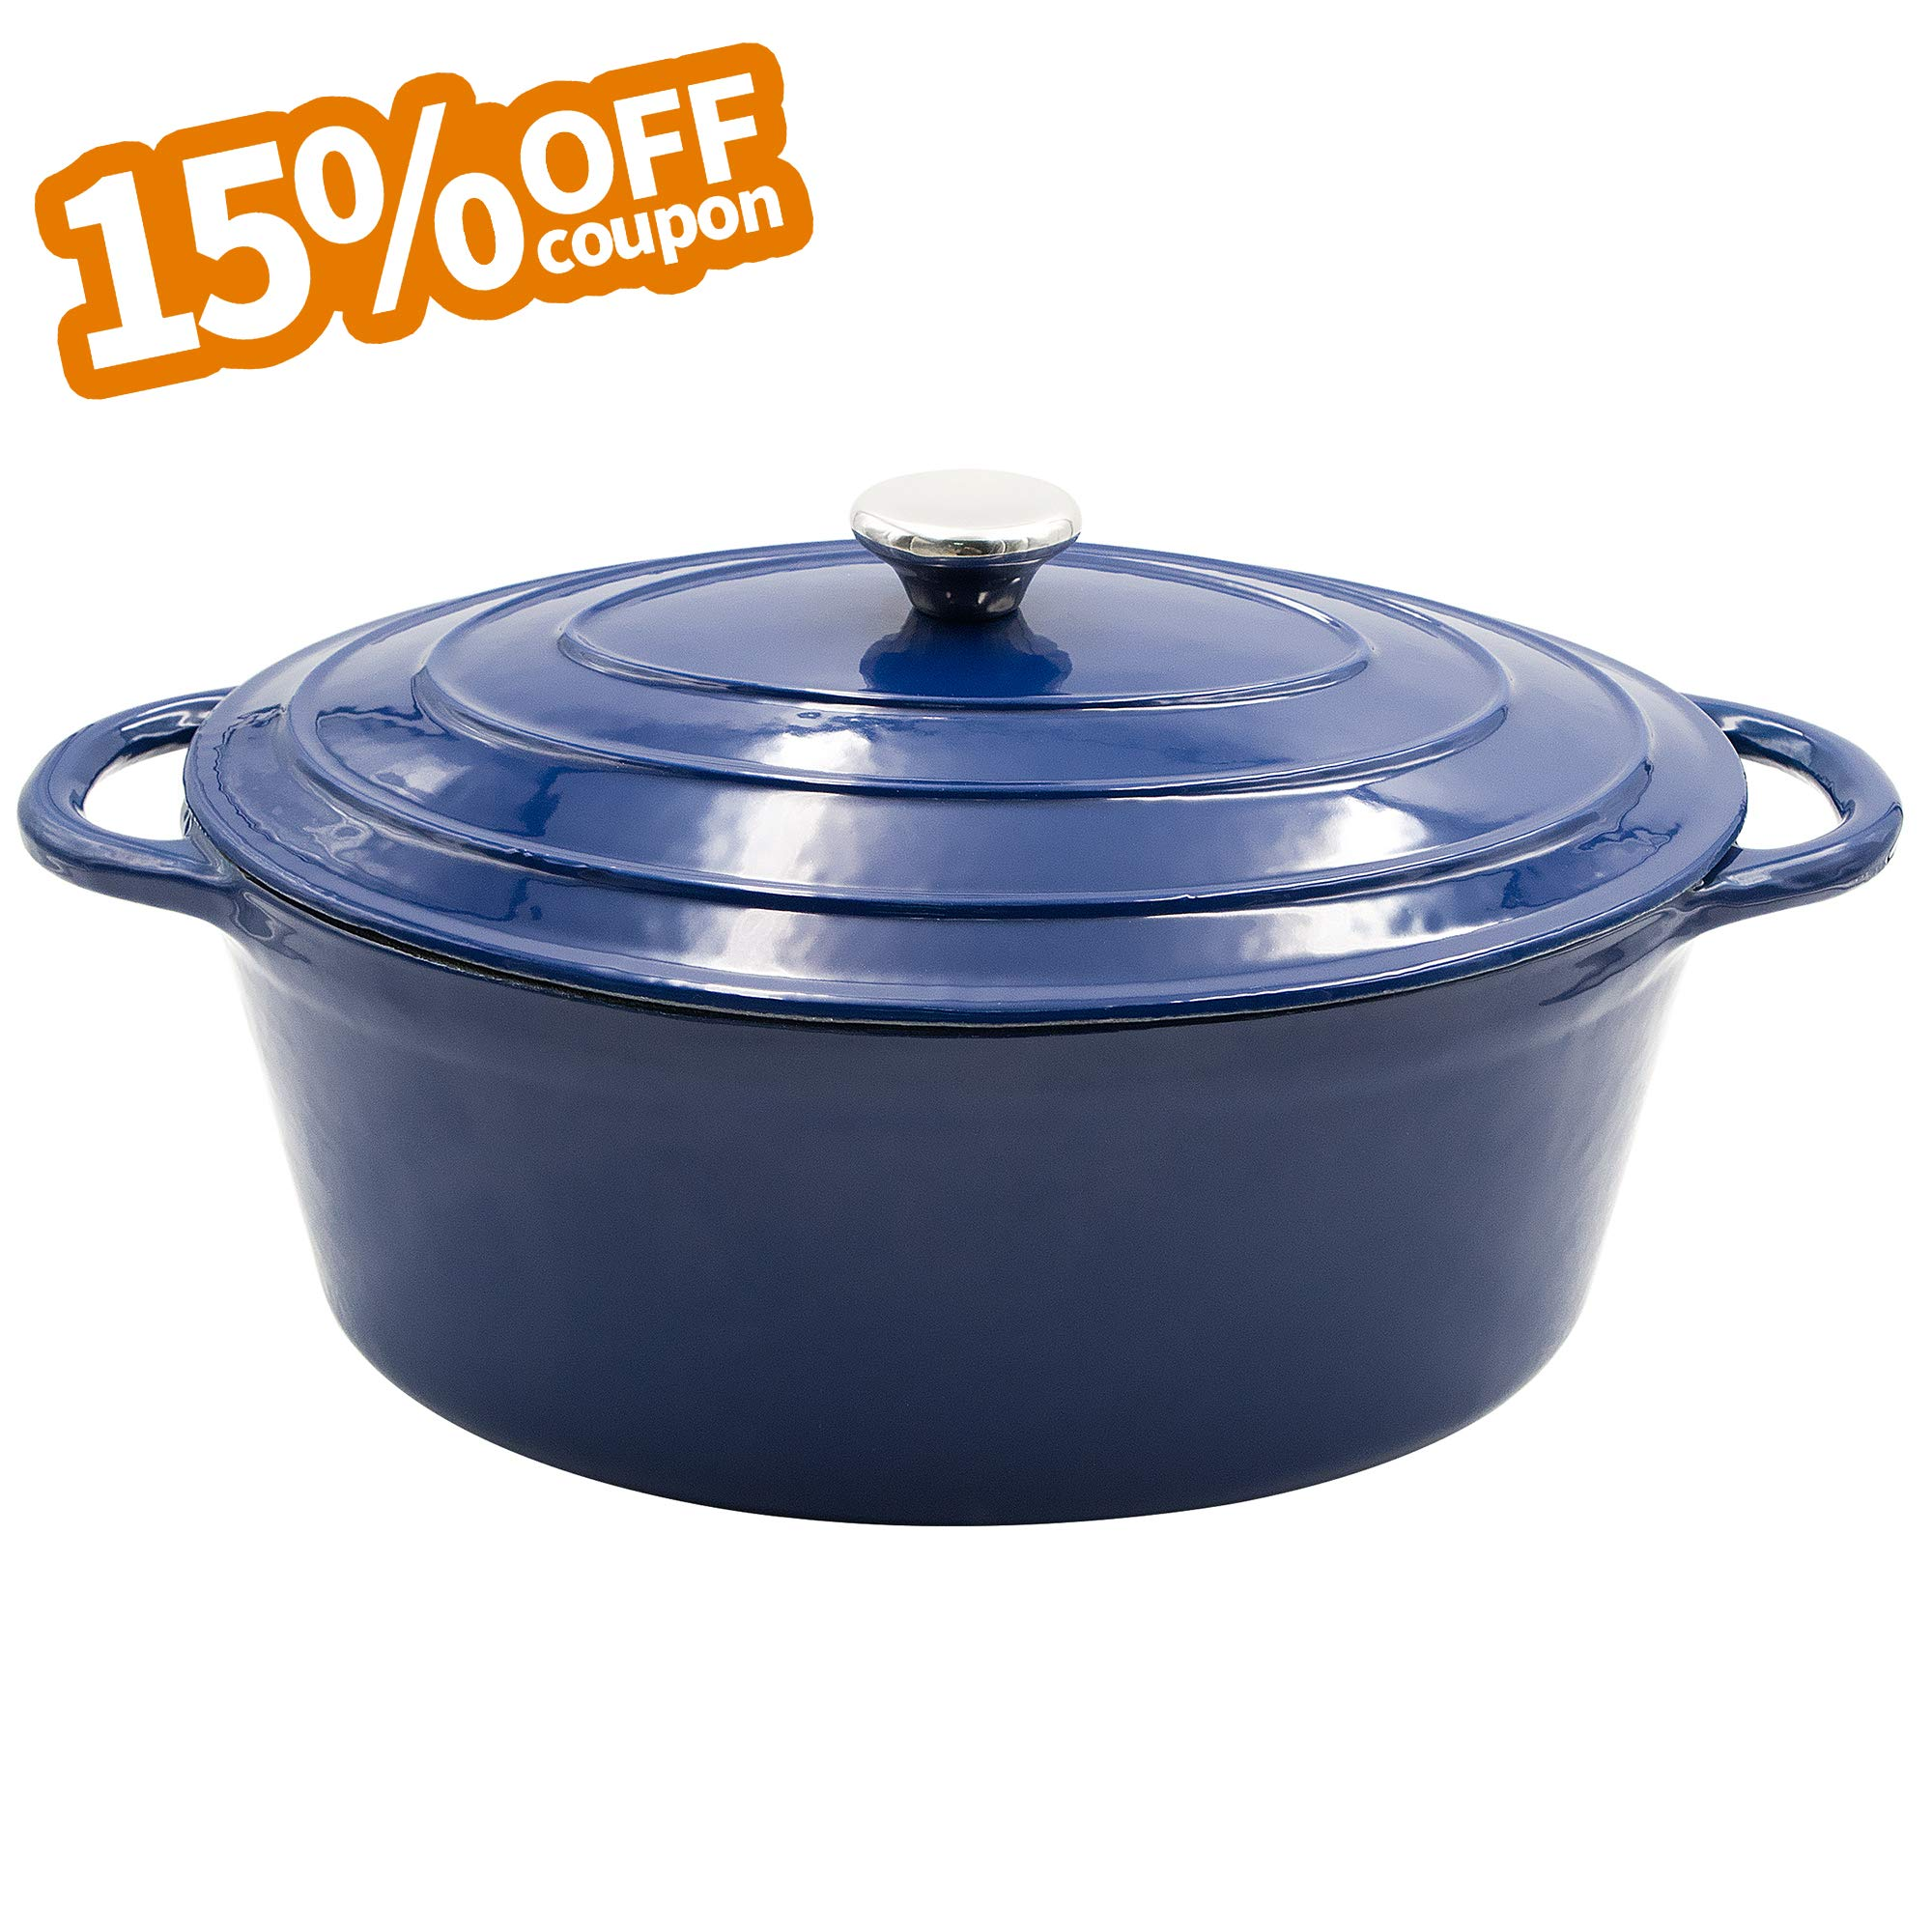 AIDEA Dutch Oven Enameled Cast Iron Round, Bread Baking Pot with Lid & 7-Quart Natural Non-Stick Slow Cook Self Christmas Gifts-Blue